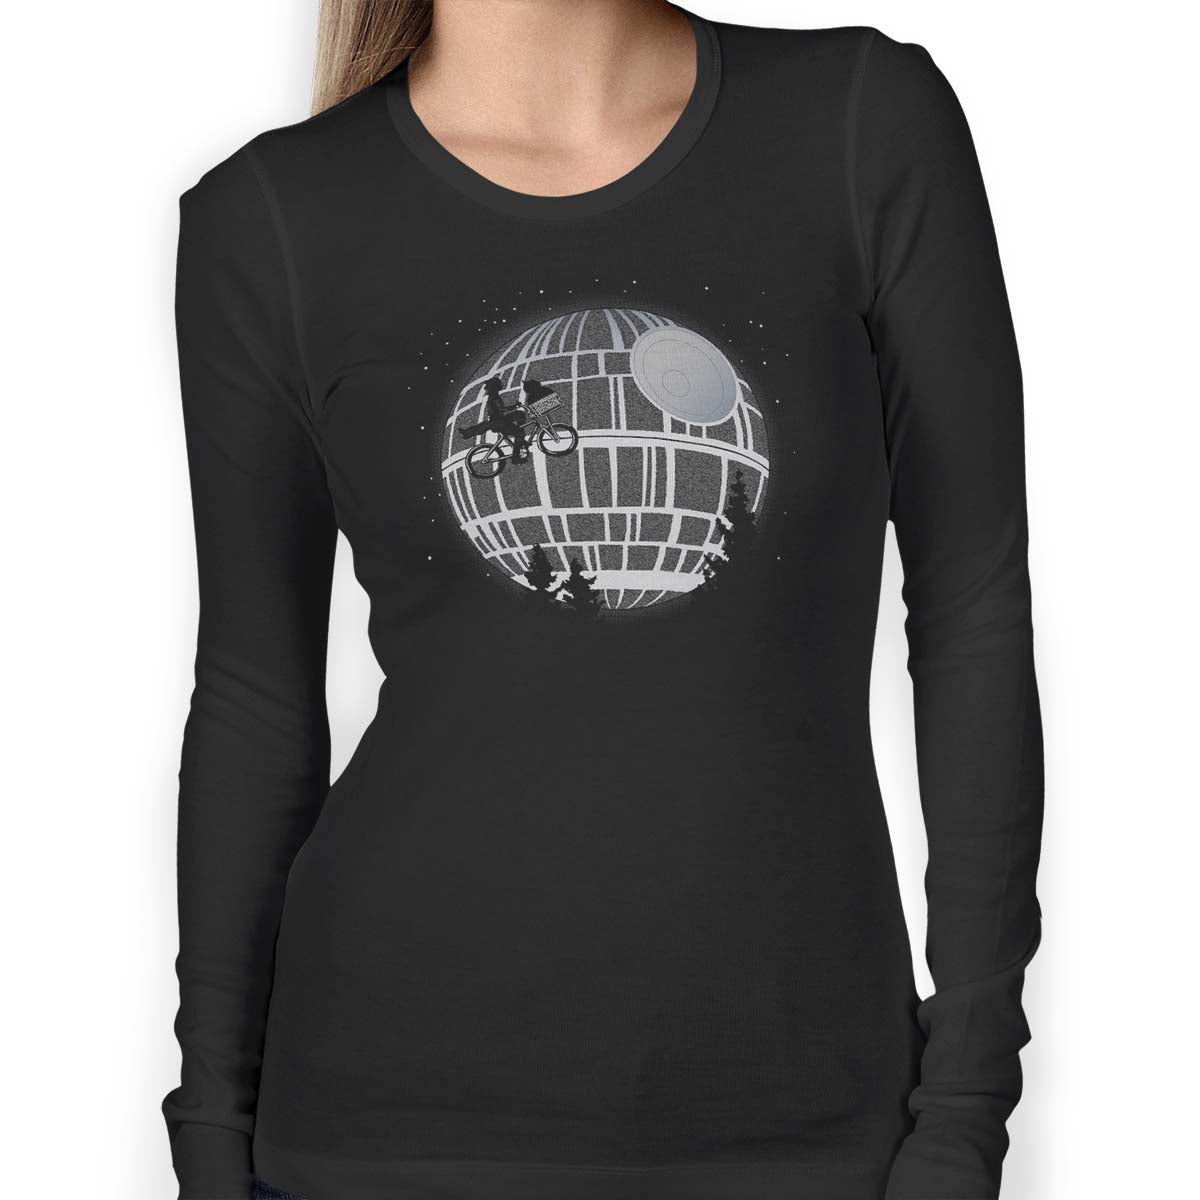 star wars death star tshirt